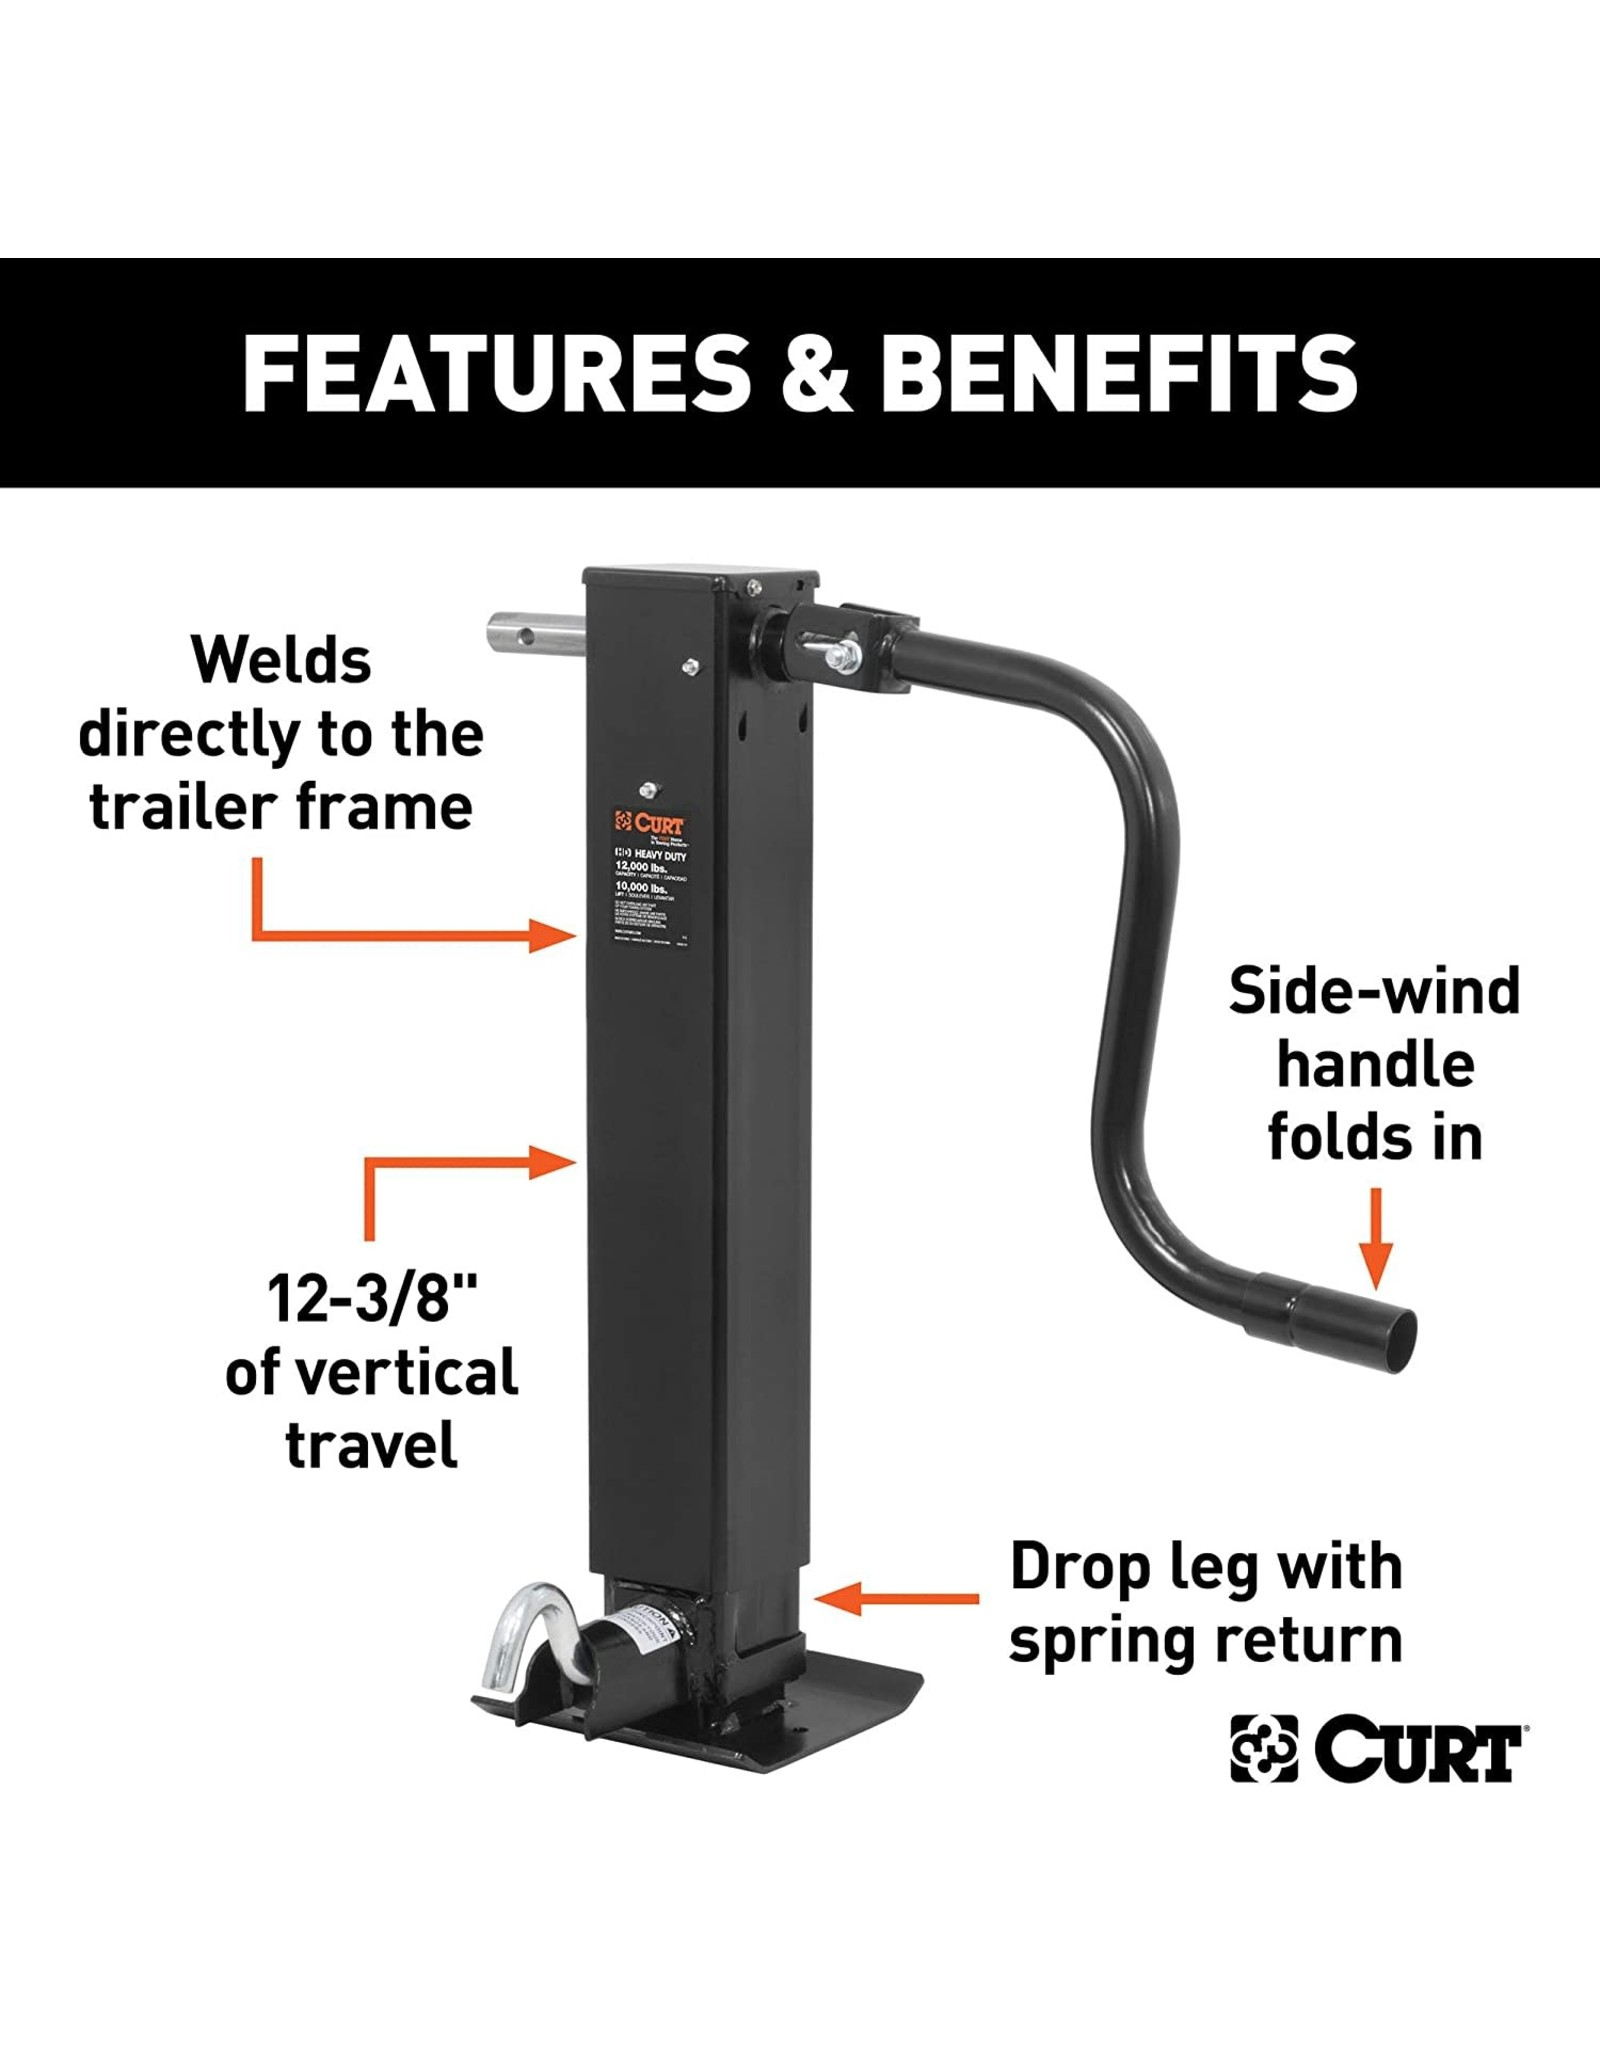 CURT CURT 28512 Direct Weld On Heavy-Duty Trailer Jack, 12,000 lbs. 12-3/8 Inches Vertical Travel